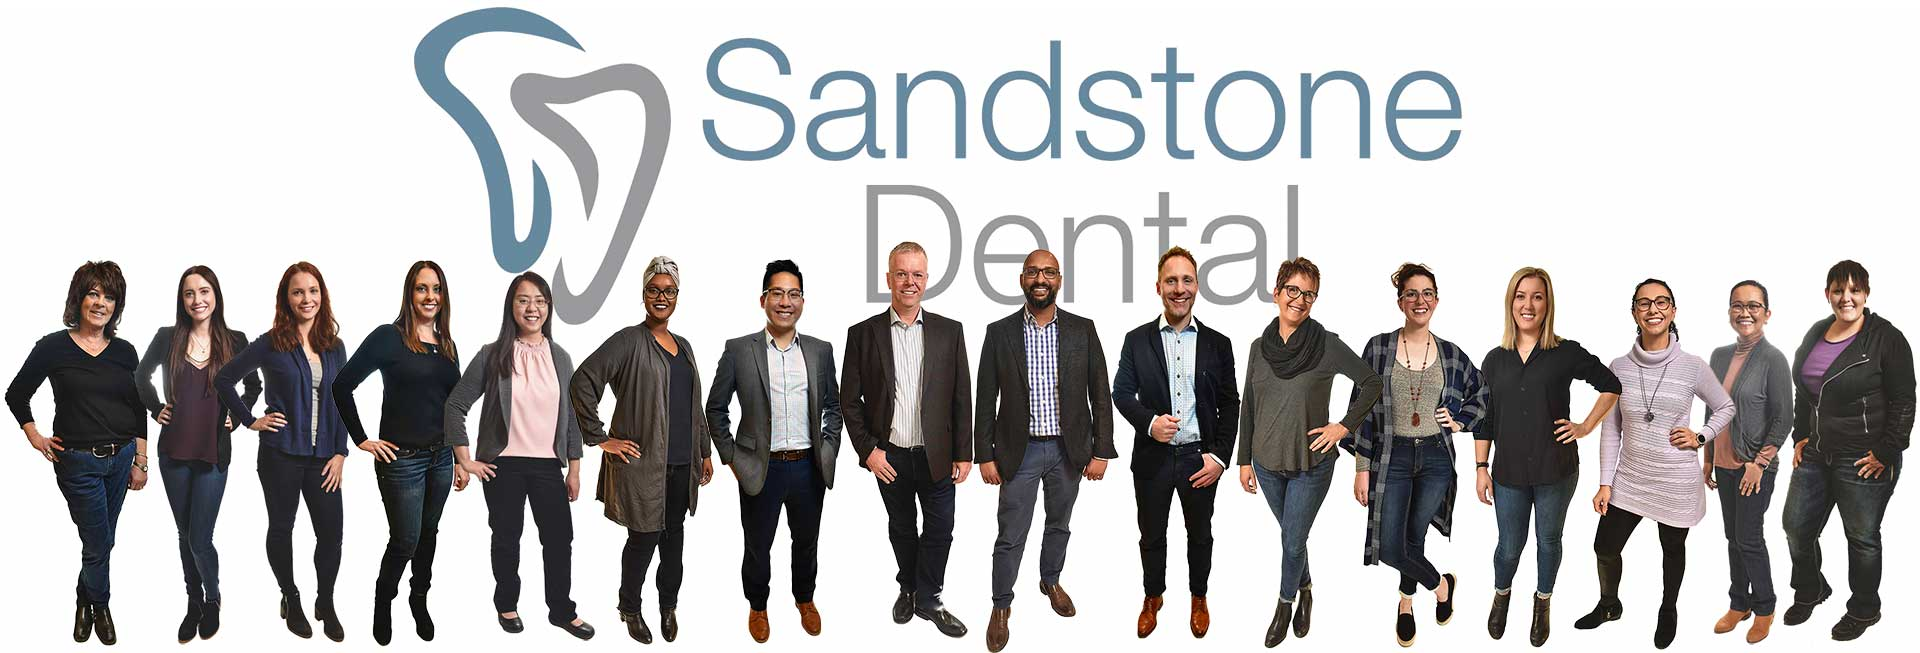 Sandstone Dental Team | North Calgary Dentist in Sandstone